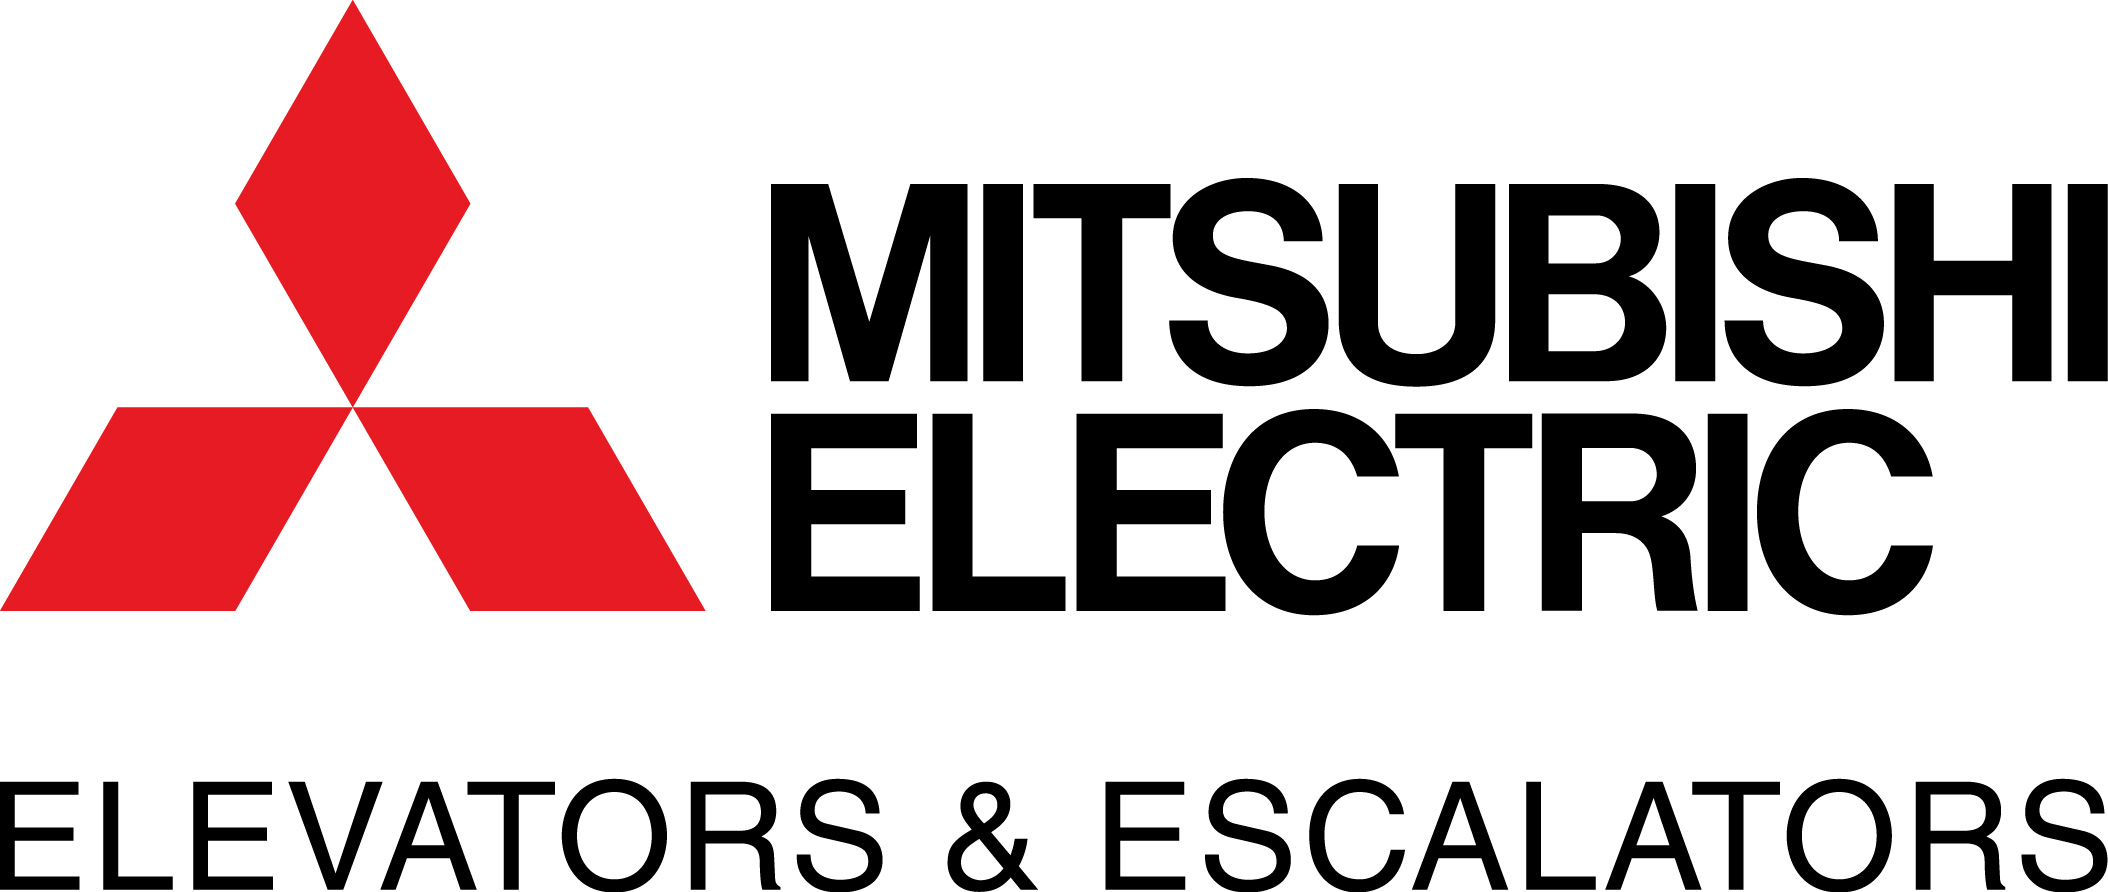 CELEBRATE ARCHITECTURE 2020 - Mitsubishi Electric logo